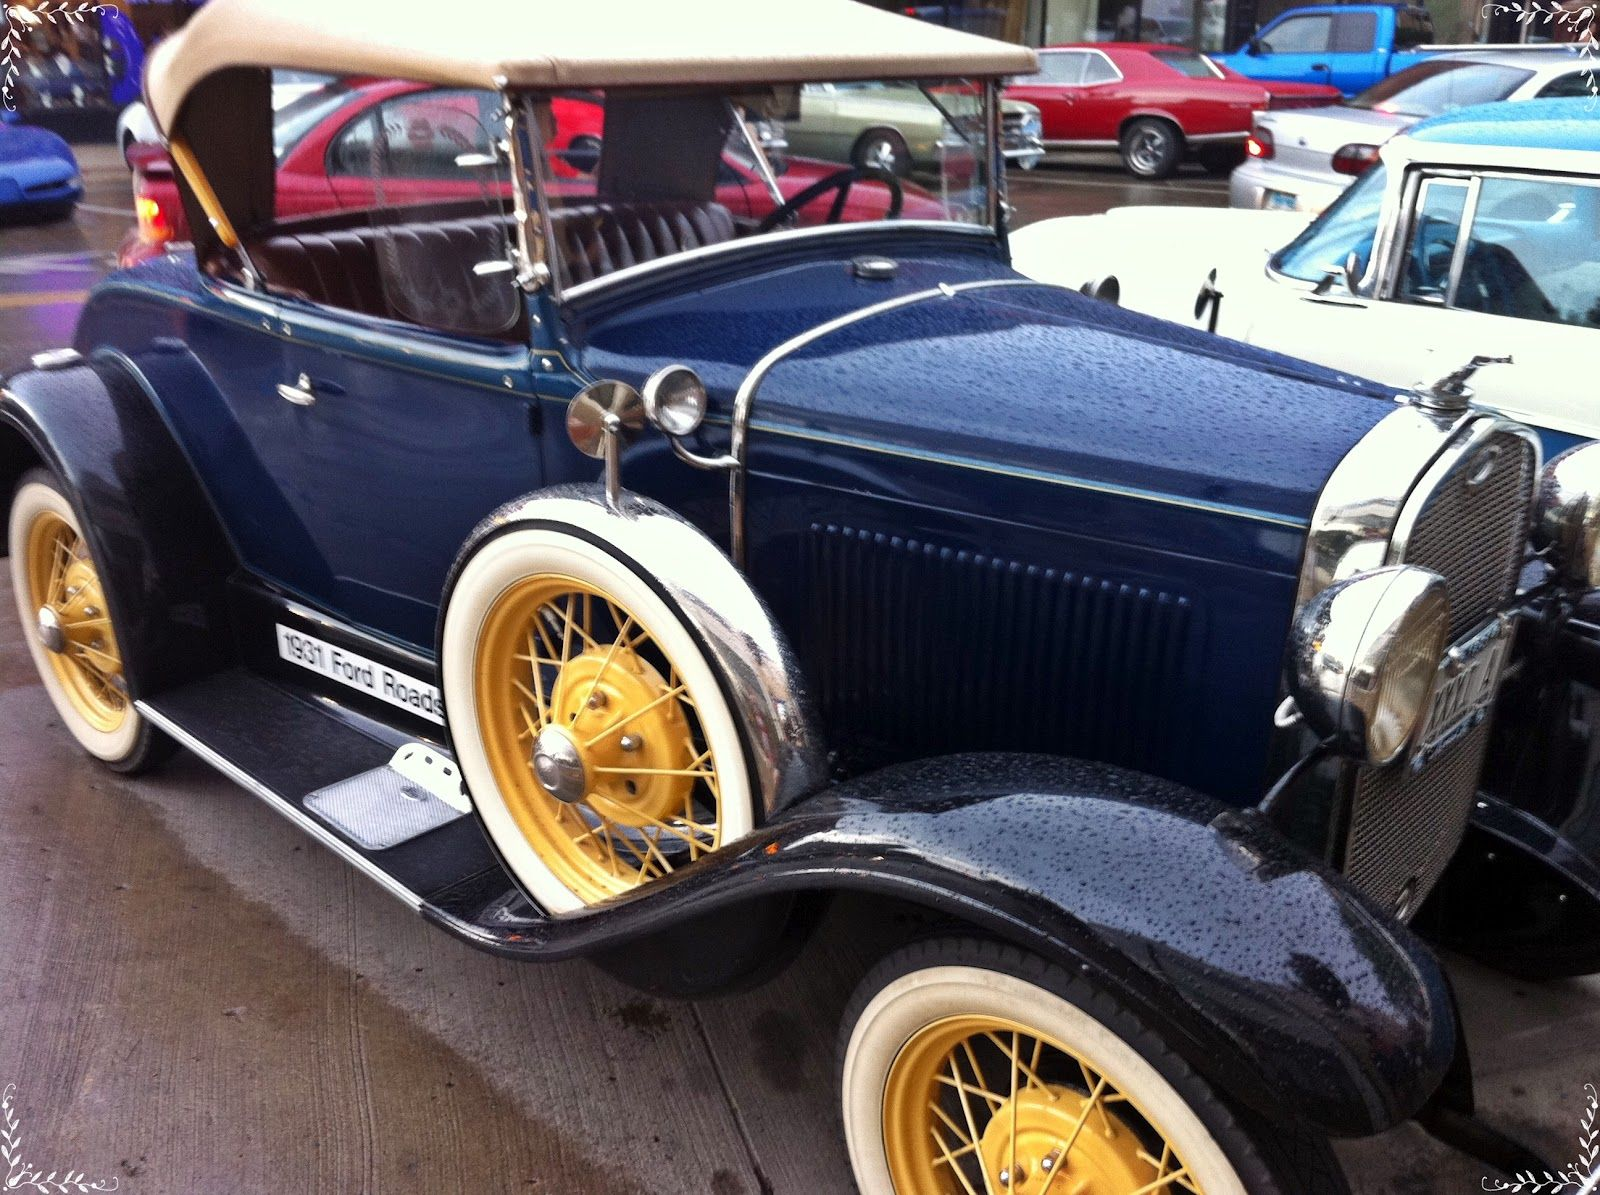 old fashioned cars from car shows | Chick in a fedora: Classic Car ...